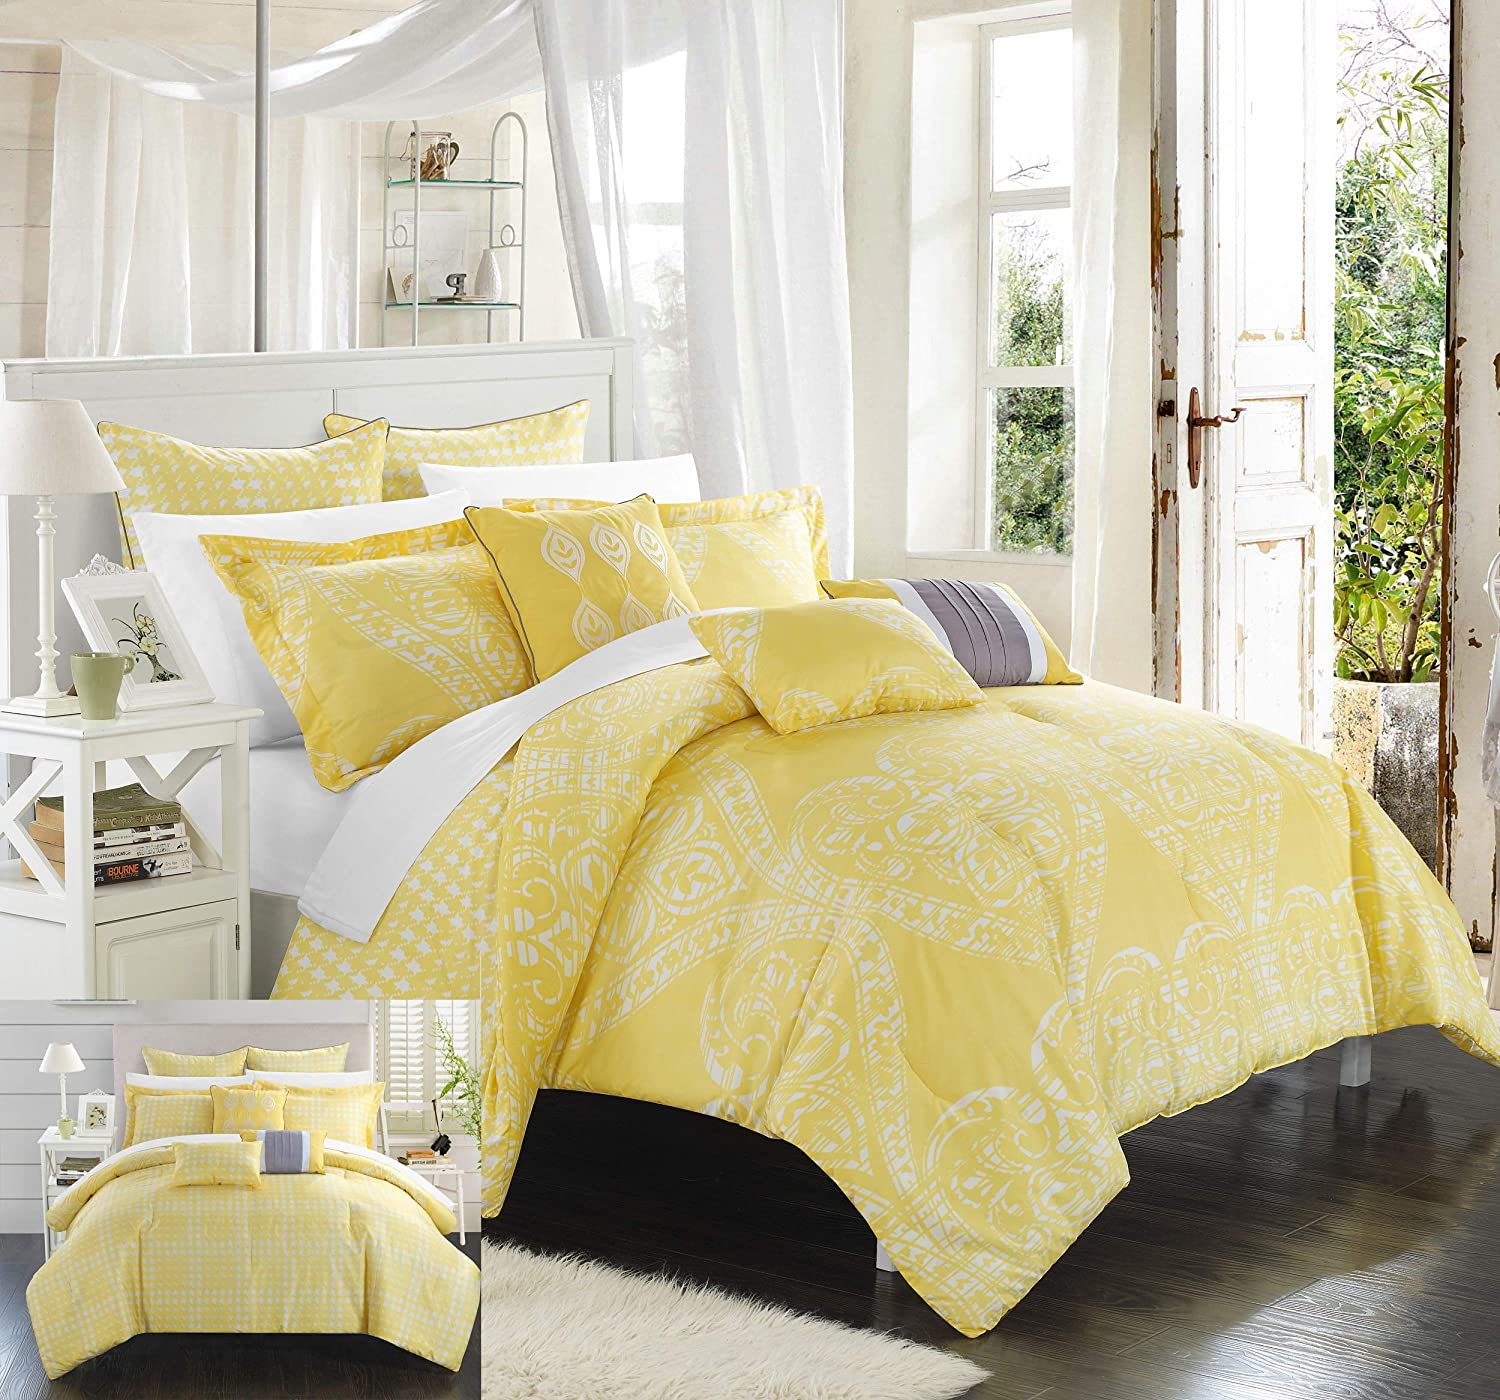 Chic Home CS3462-AN 8 Piece Sicily Oversized Overfilled Comforter Set, Queen, Yellow